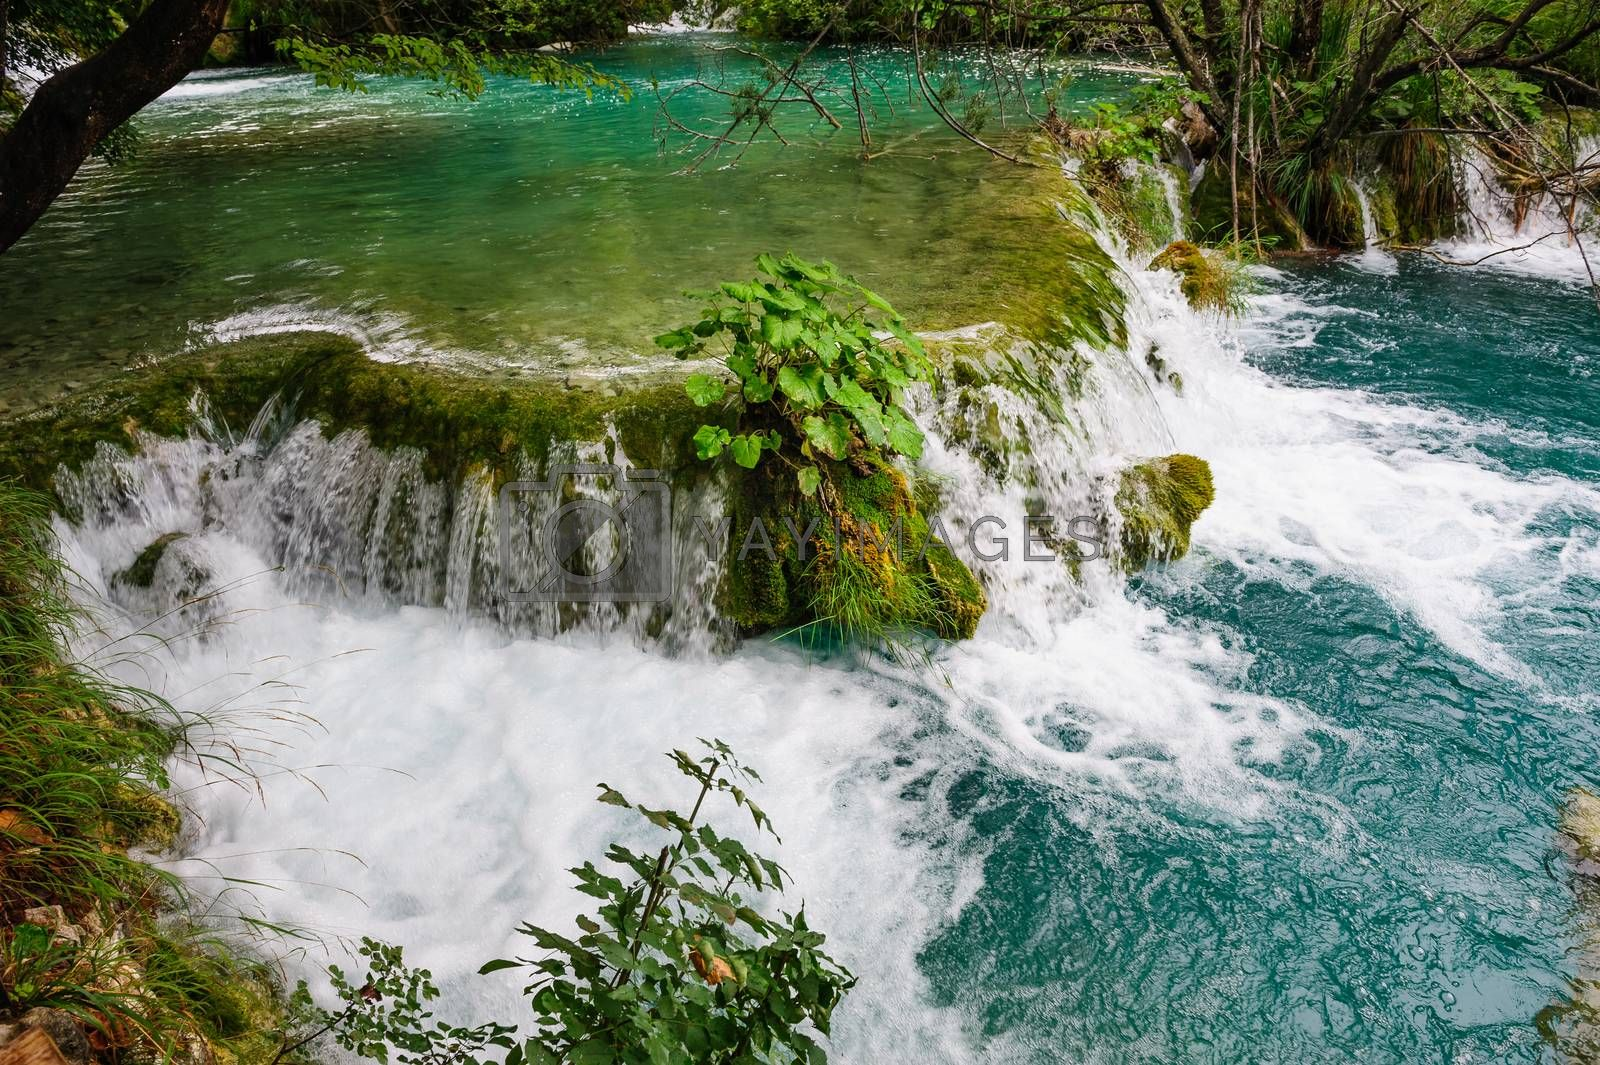 Royalty free image of Waterfalls in Plitvice Lakes National Park, Croatia by starush